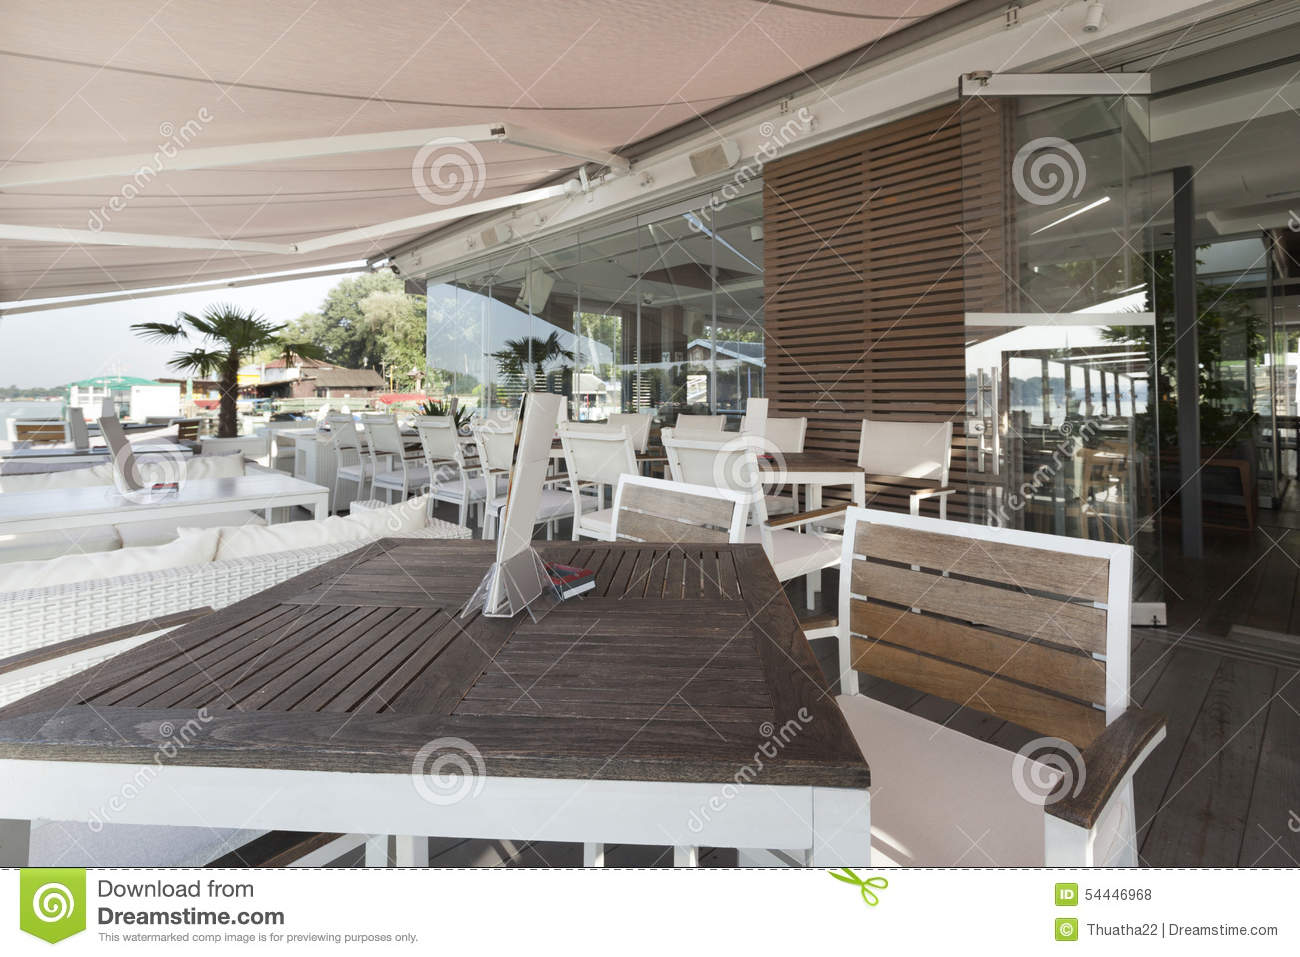 Modern riverside cafe interior in the morning